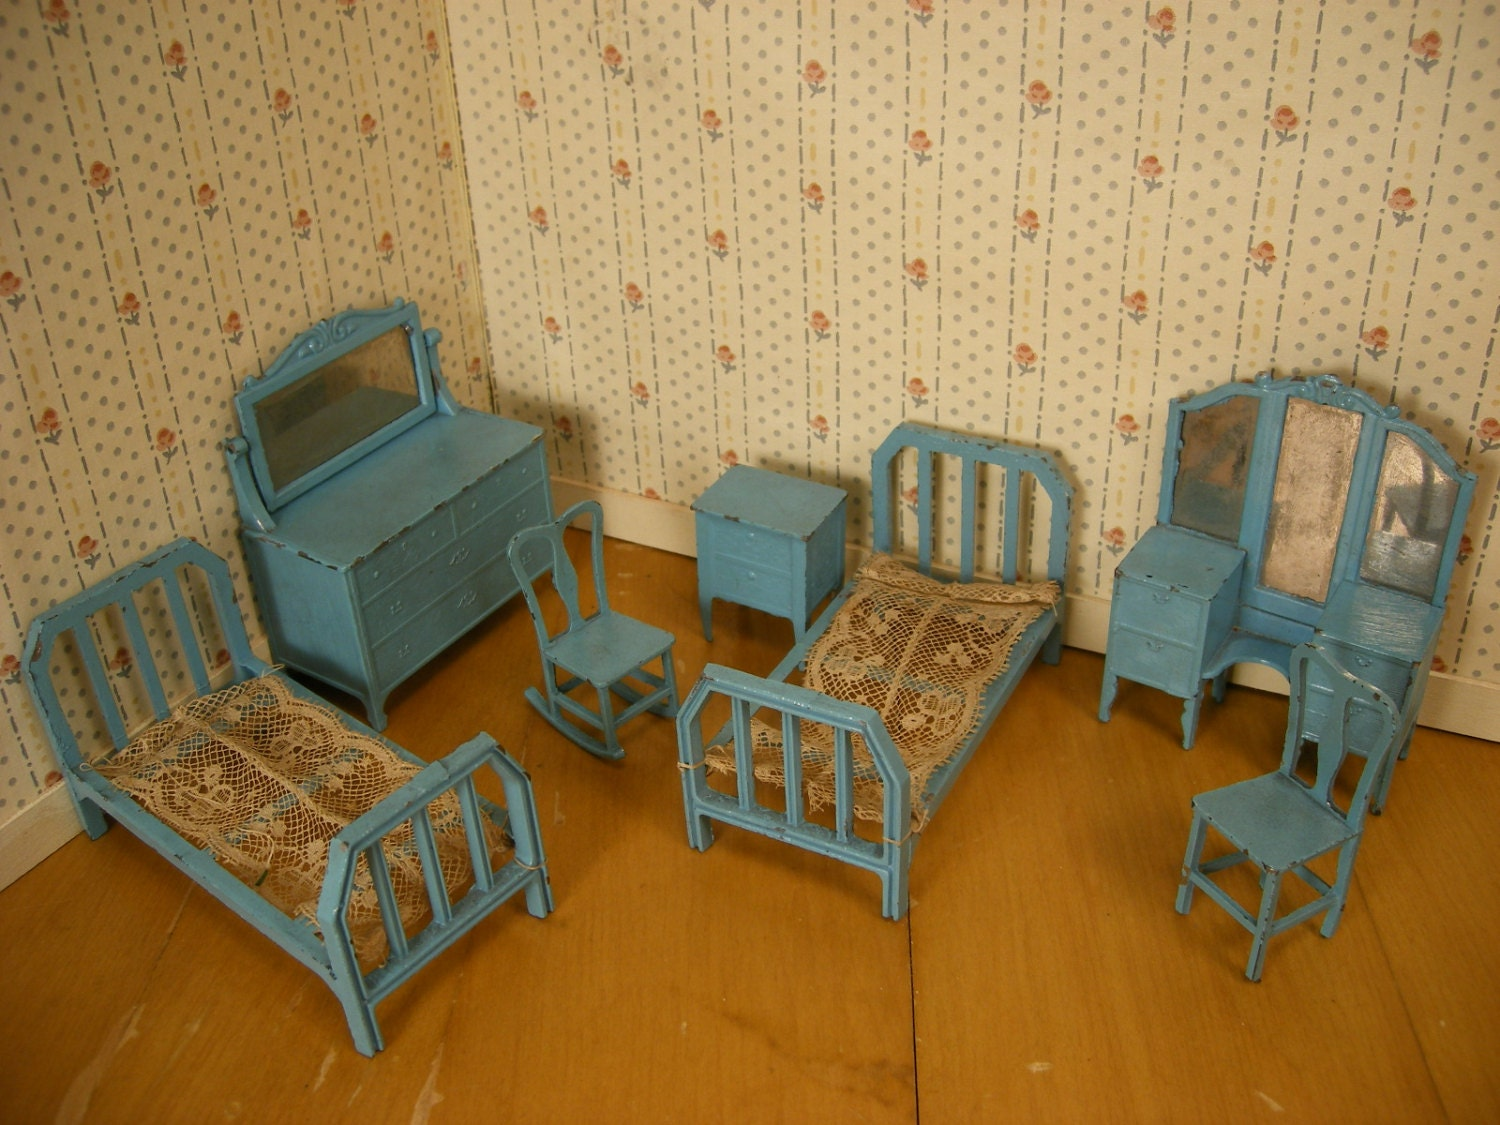 Tootsie Toy Dollhouse Furniture 7 Piece Bedroom Set In Blue